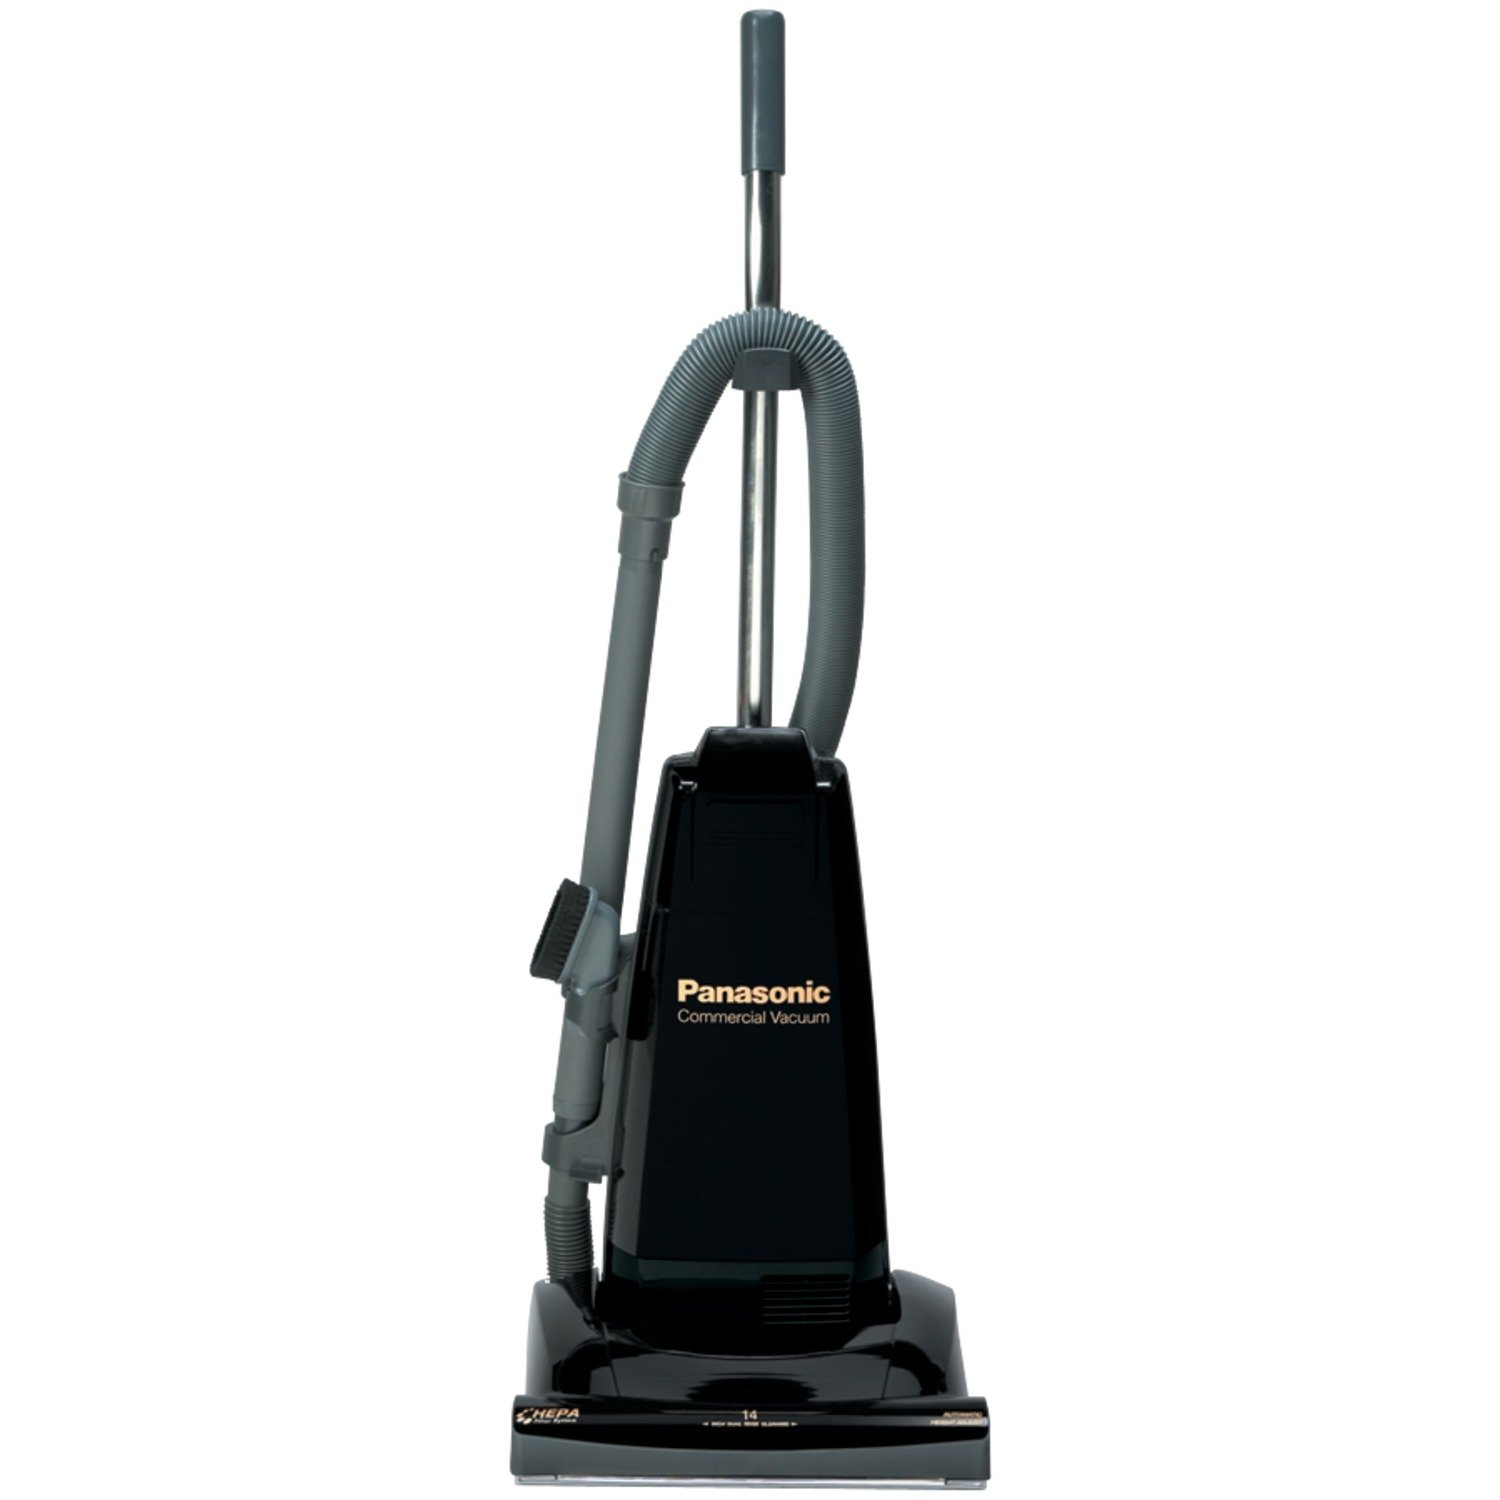 panasonic mcv5210 commercial upright vacuum cleaner